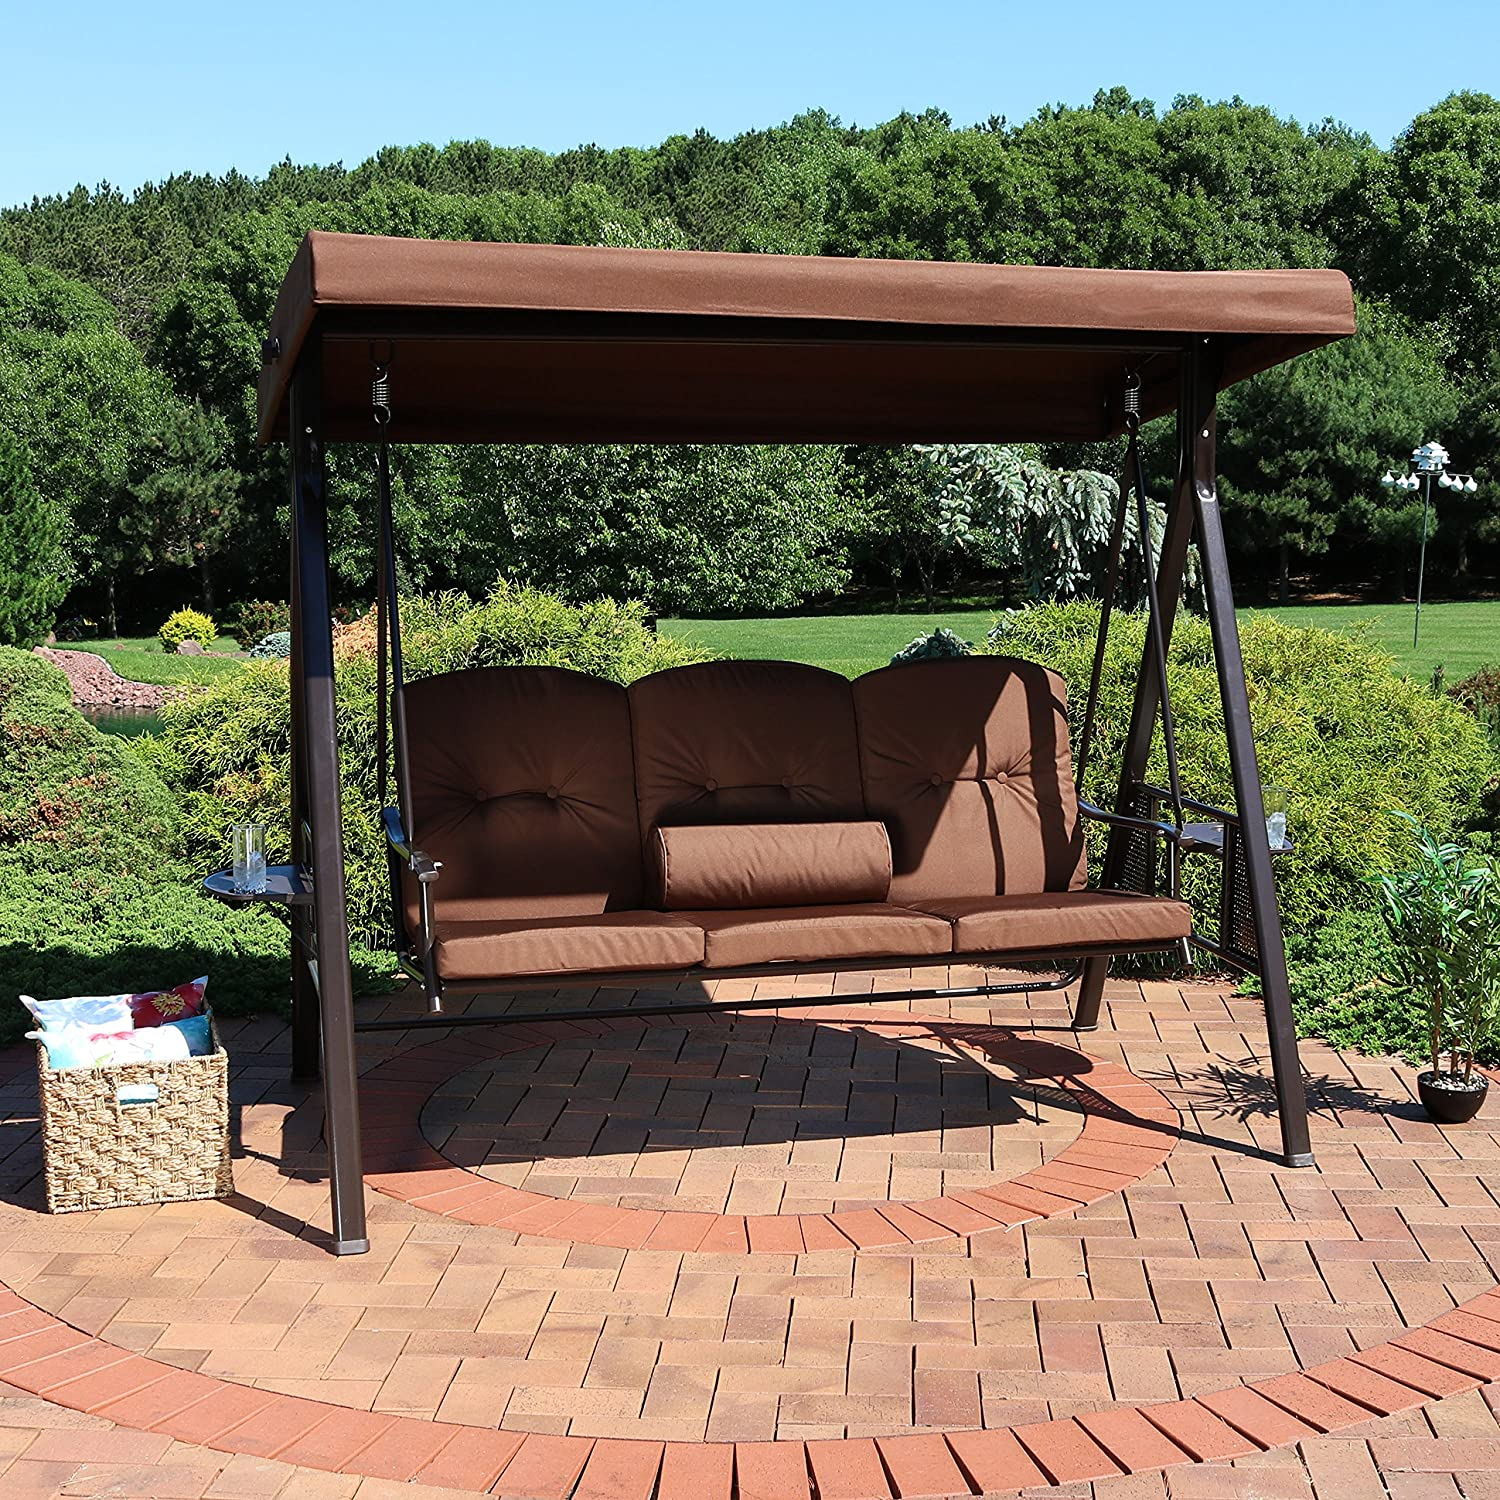 Sunnydaze - Toldo inclinable para 3 personas con estructura de acero, ajustable al aire libre, para patio, columpio con mesas laterales, cojines y almohadas, opciones de color disponibles: Amazon.es: Jardín